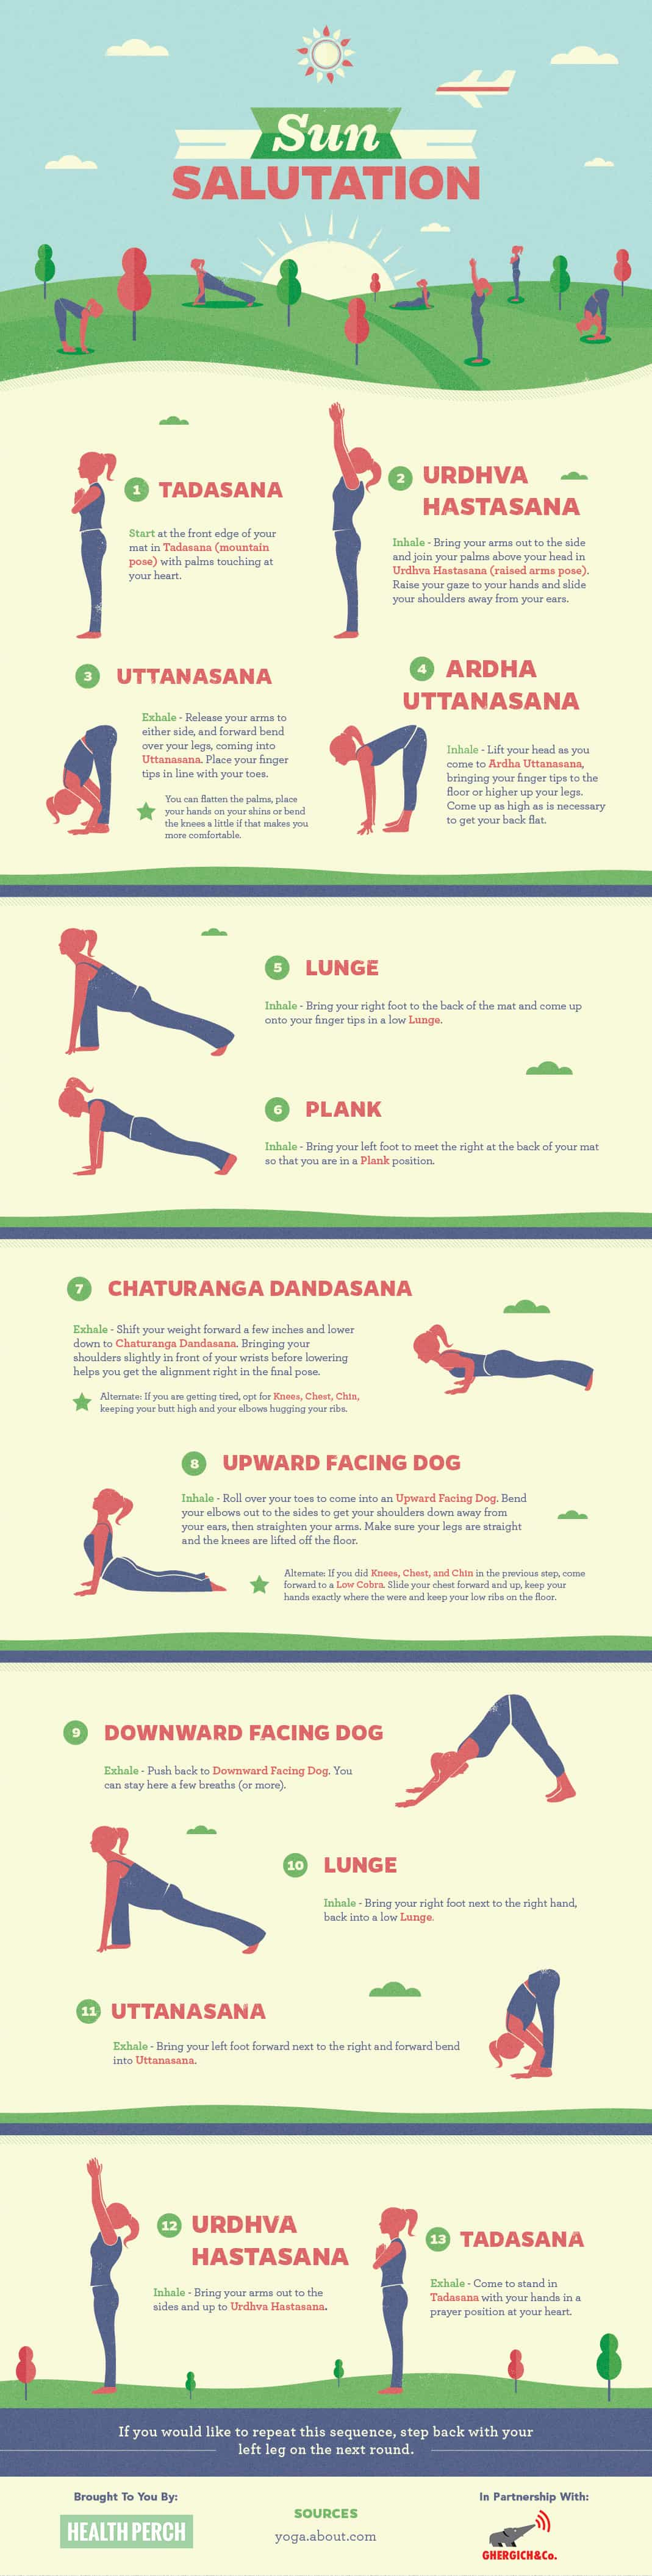 Displaying 19 gt images for sun salutation sequence